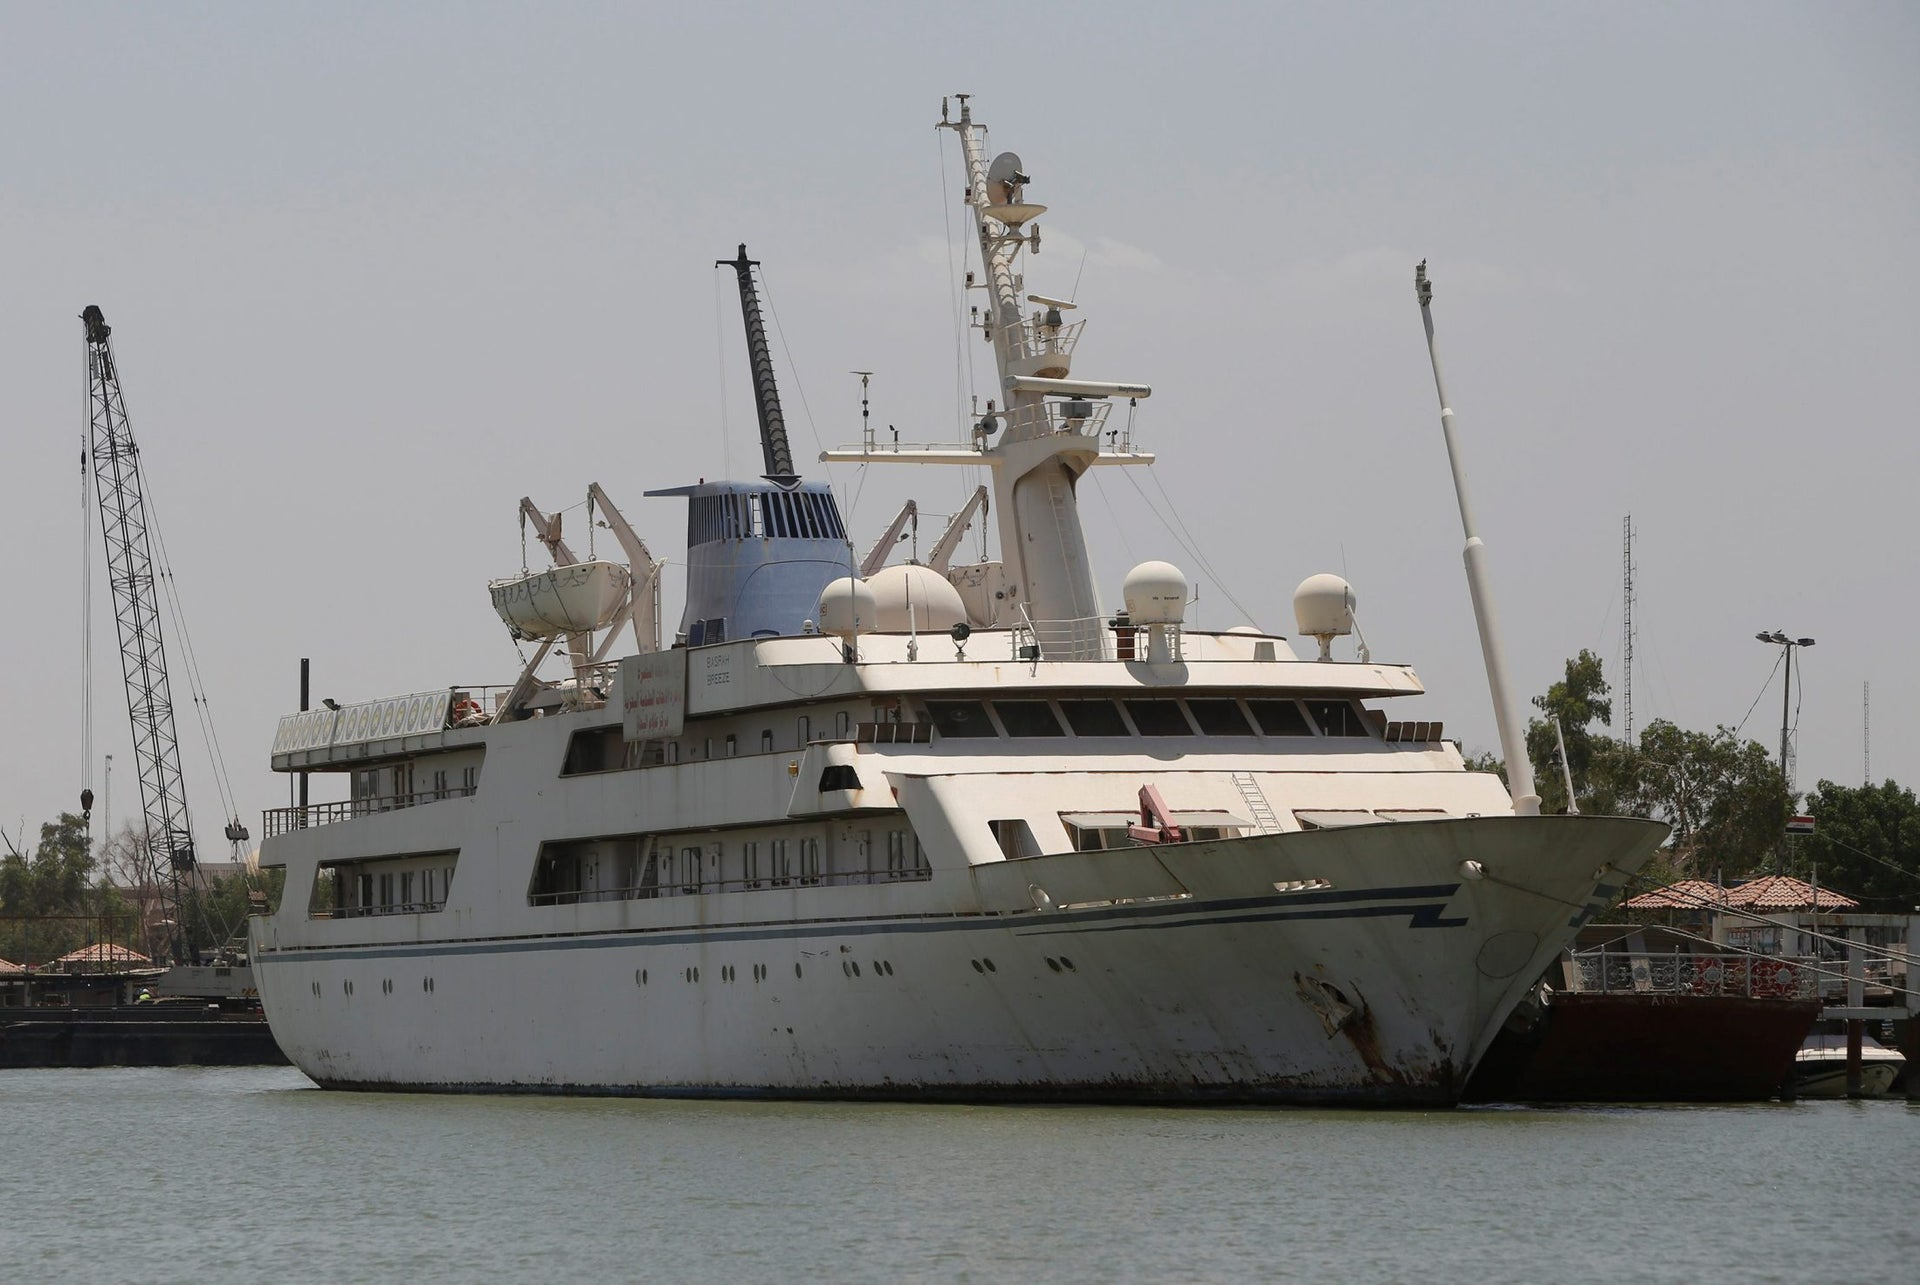 """Yacht called """"Basrah Breeze"""", once owned by former Iraqi president Saddam Hussein, who was toppled in a U.S.-led invasion in 2003, is seen in the southern port of Basra, Iraq May 14, 2018."""